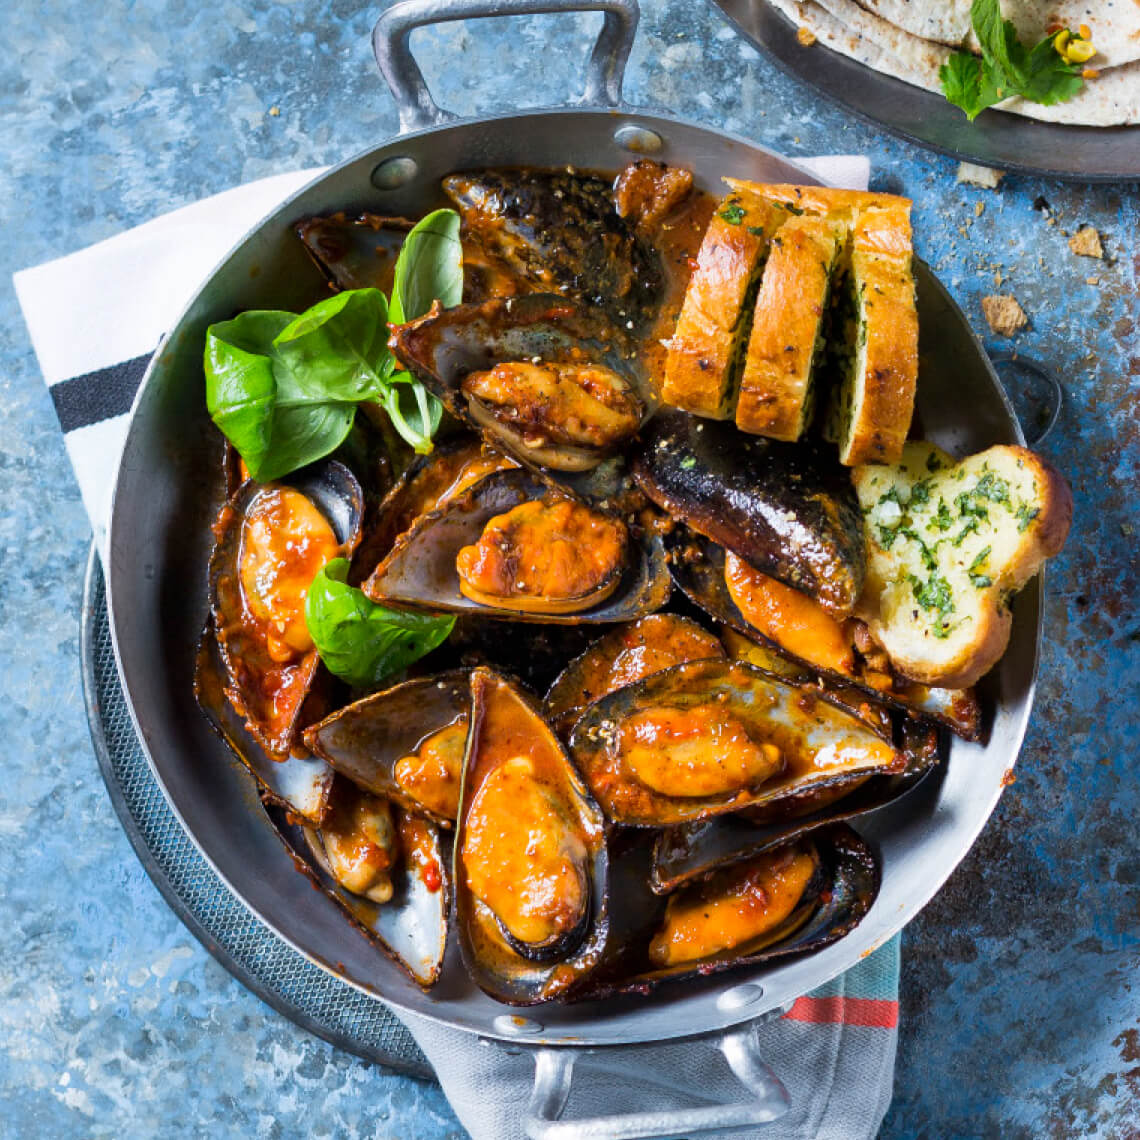 Portuguese sherry mussels with garlic bread